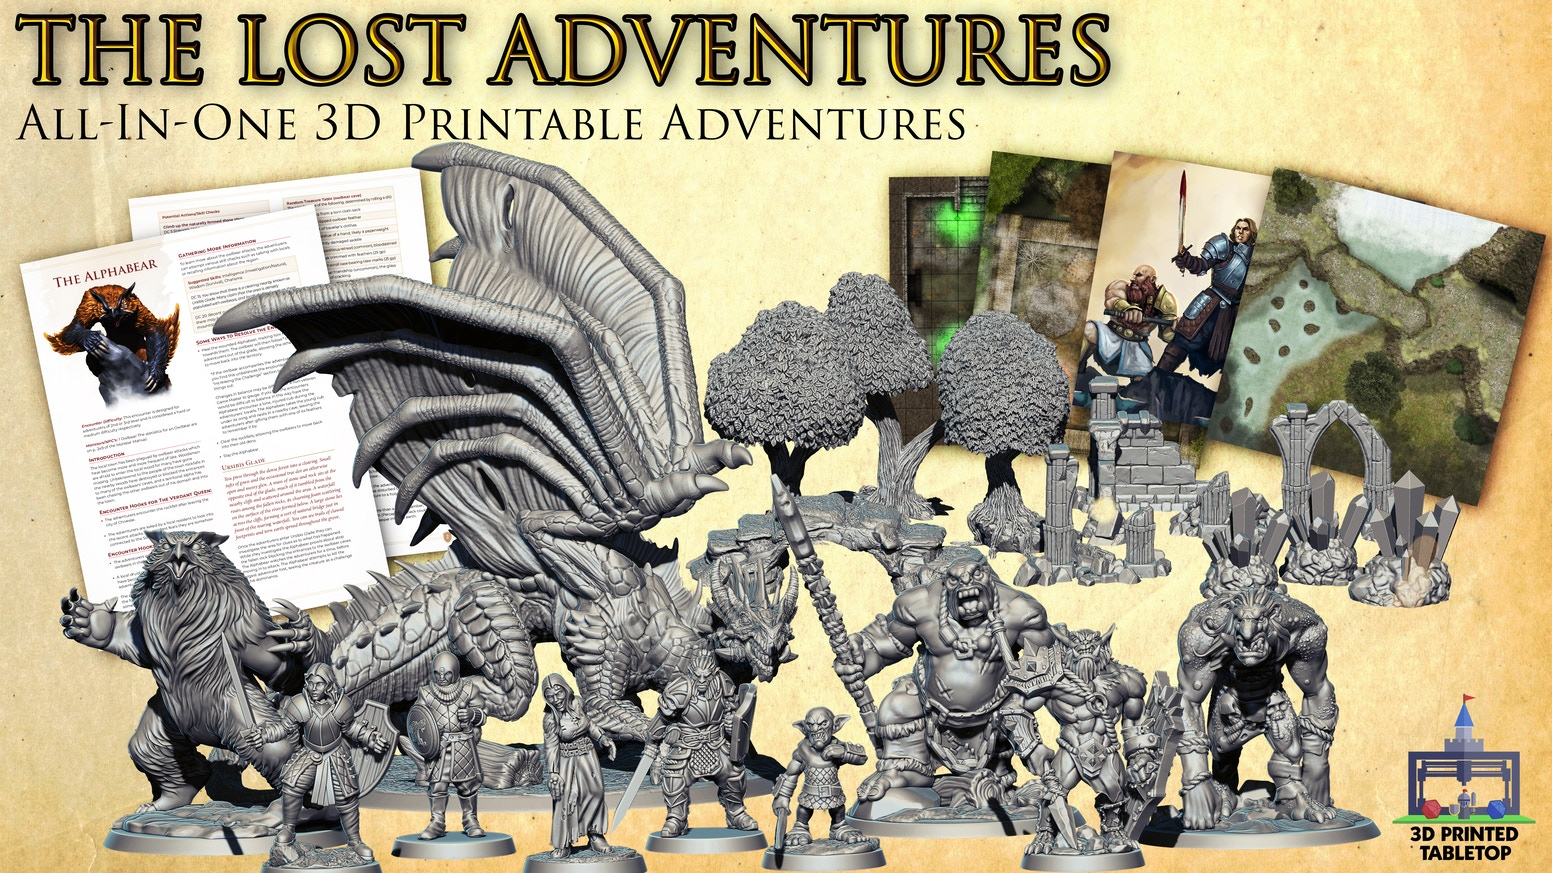 The Lost Adventures: All-In-One 3D Printable Adventures by